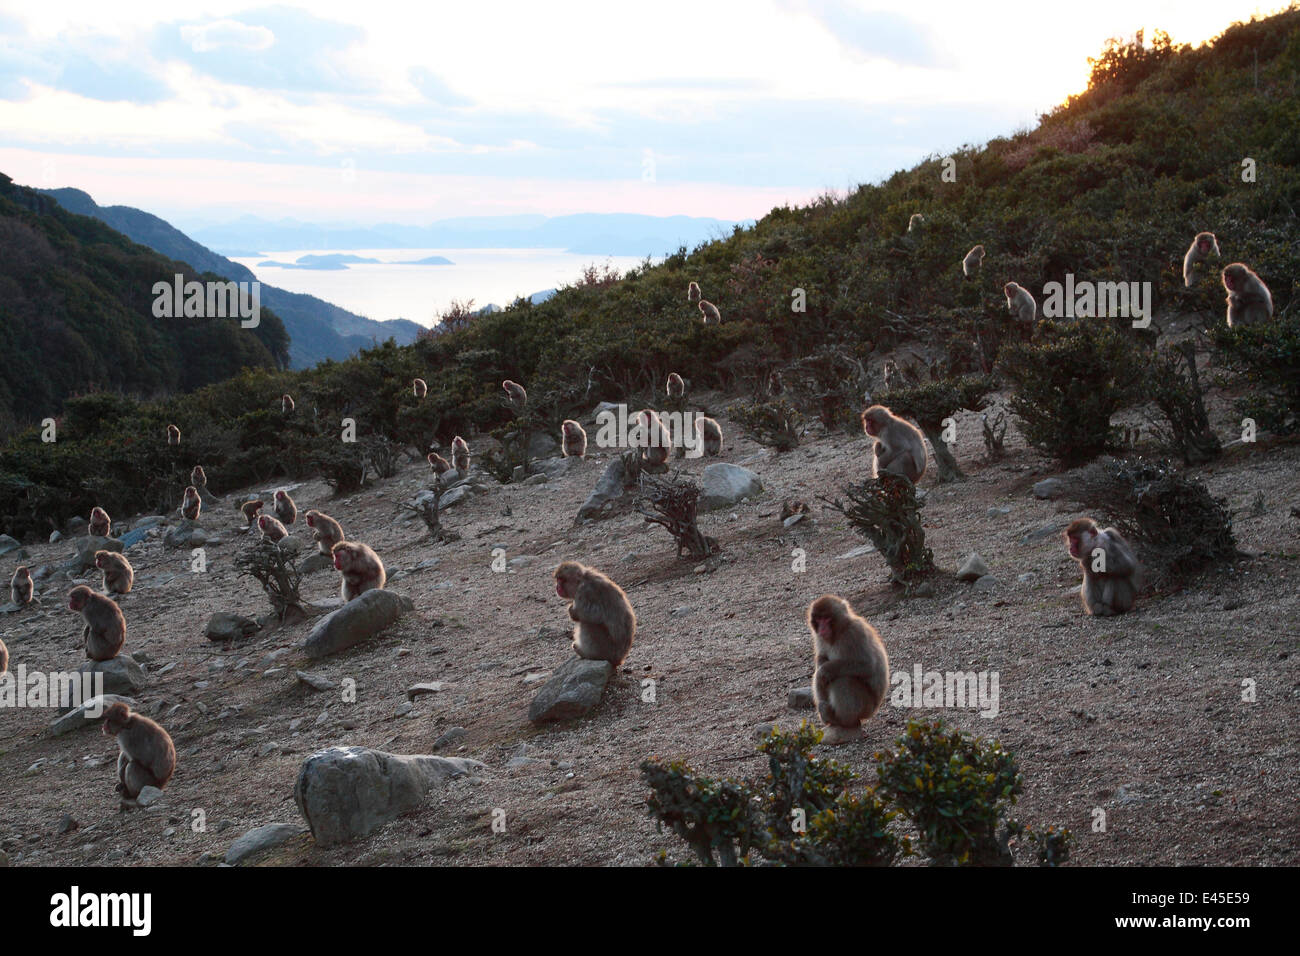 Japanese macaques (Macaca fuscata) spread out sitting on small rocks, Shodoshima, Japan - Stock Image